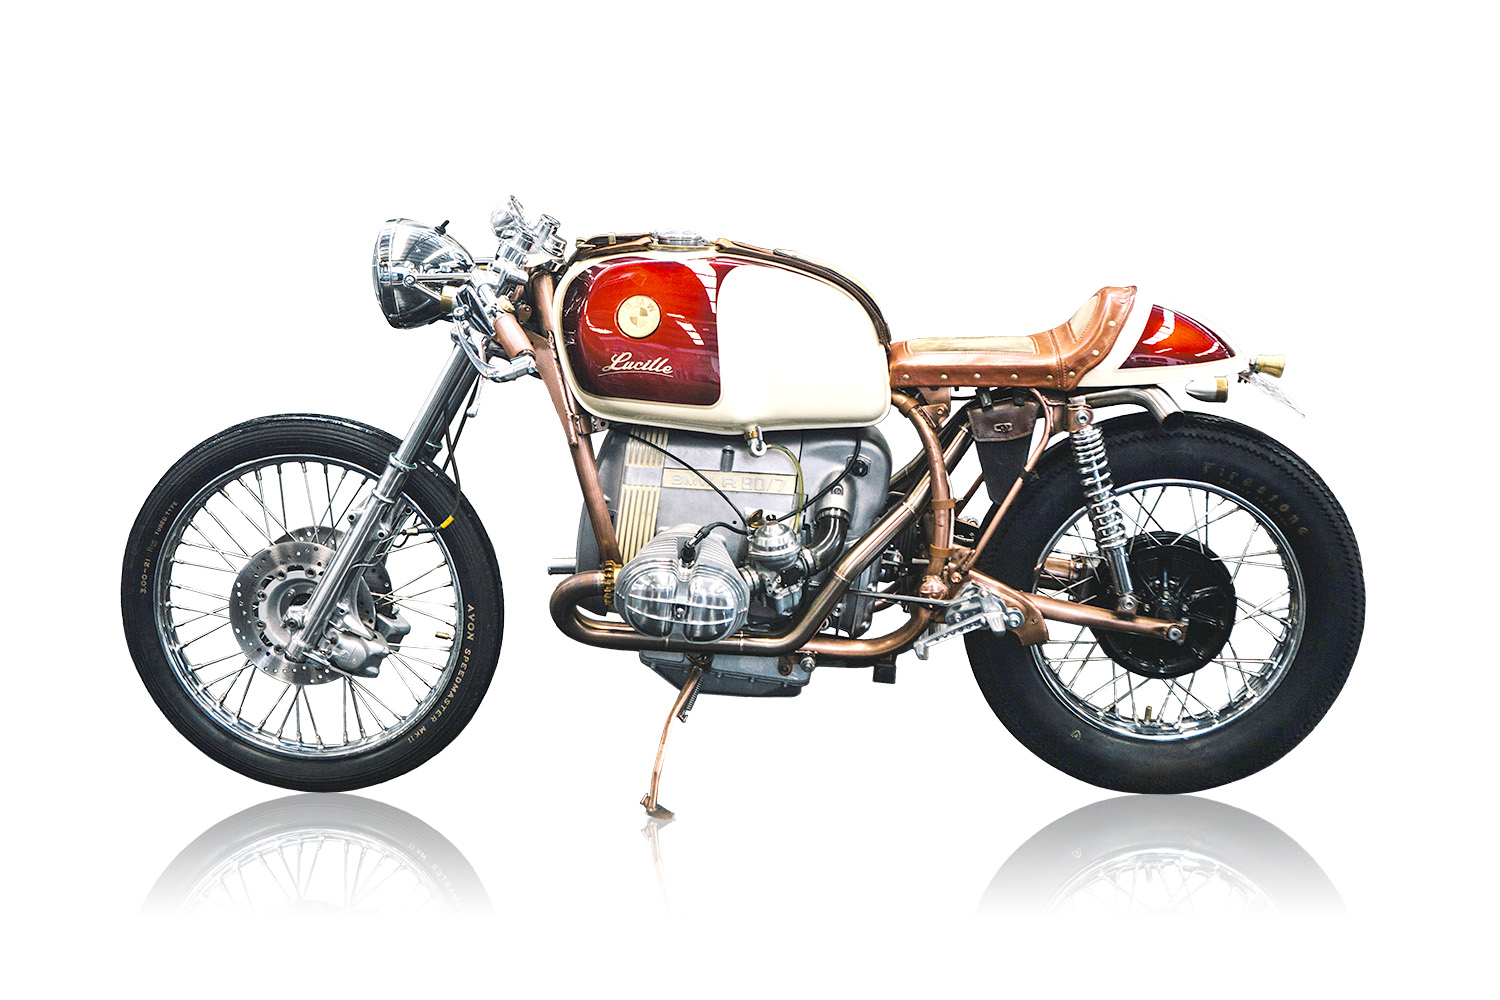 BMW_CAFE_RACER_R80_1840_cut.jpg